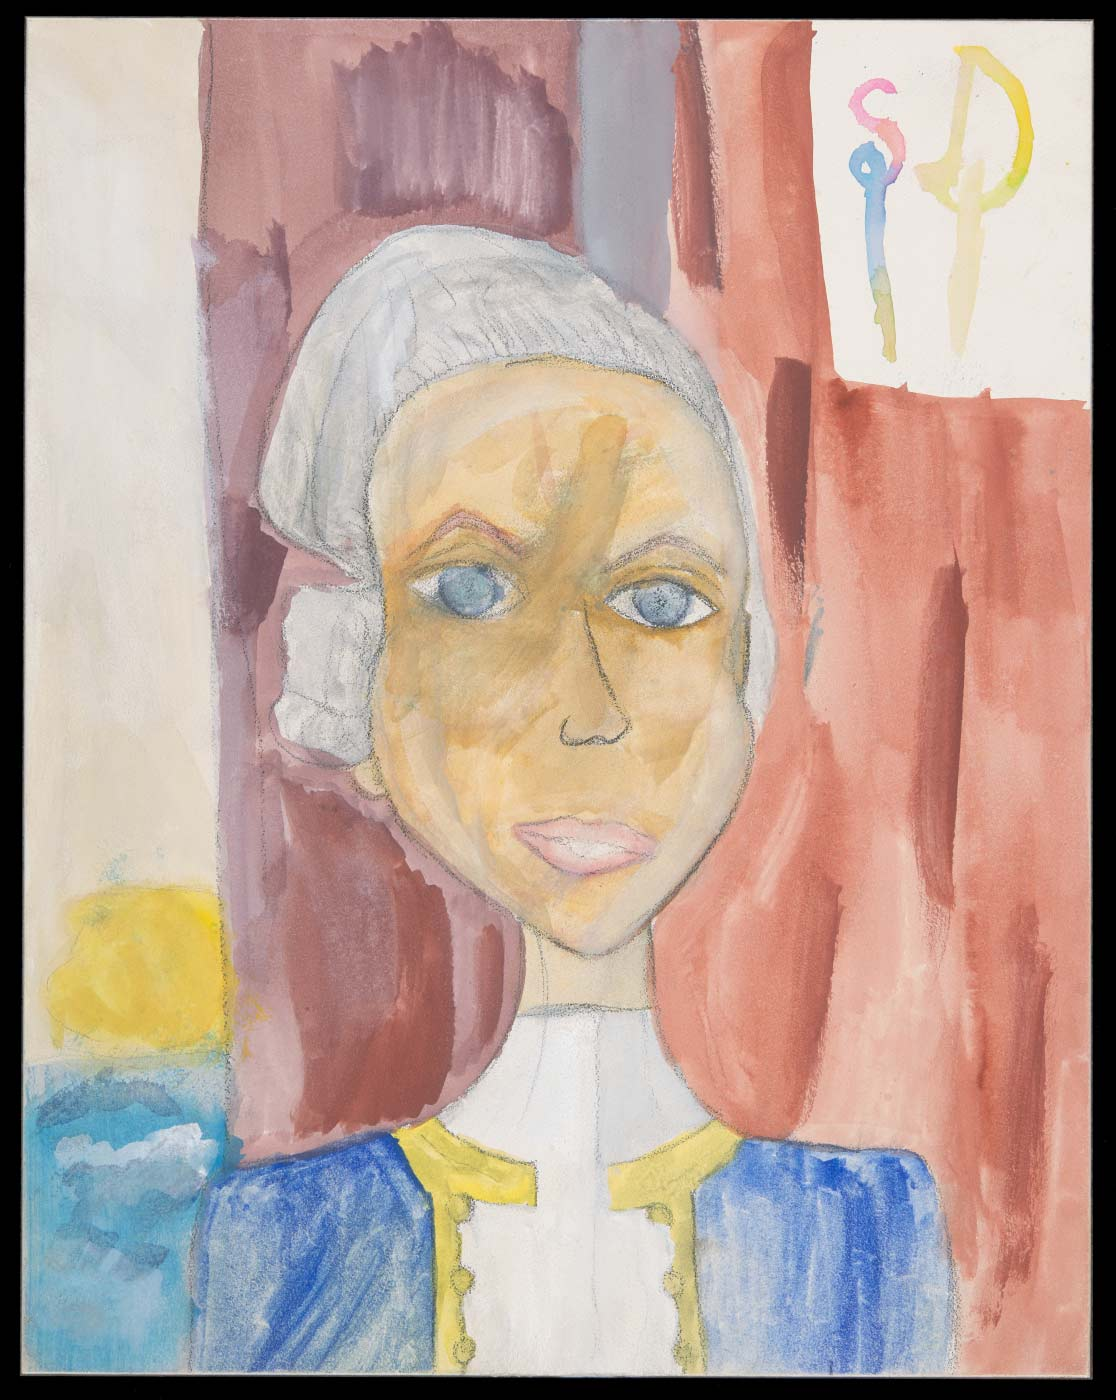 Painting and drawing on aquabord, depicting the head and shoulders of a person. 'SD' appears in the upper right corner. - click to view larger image